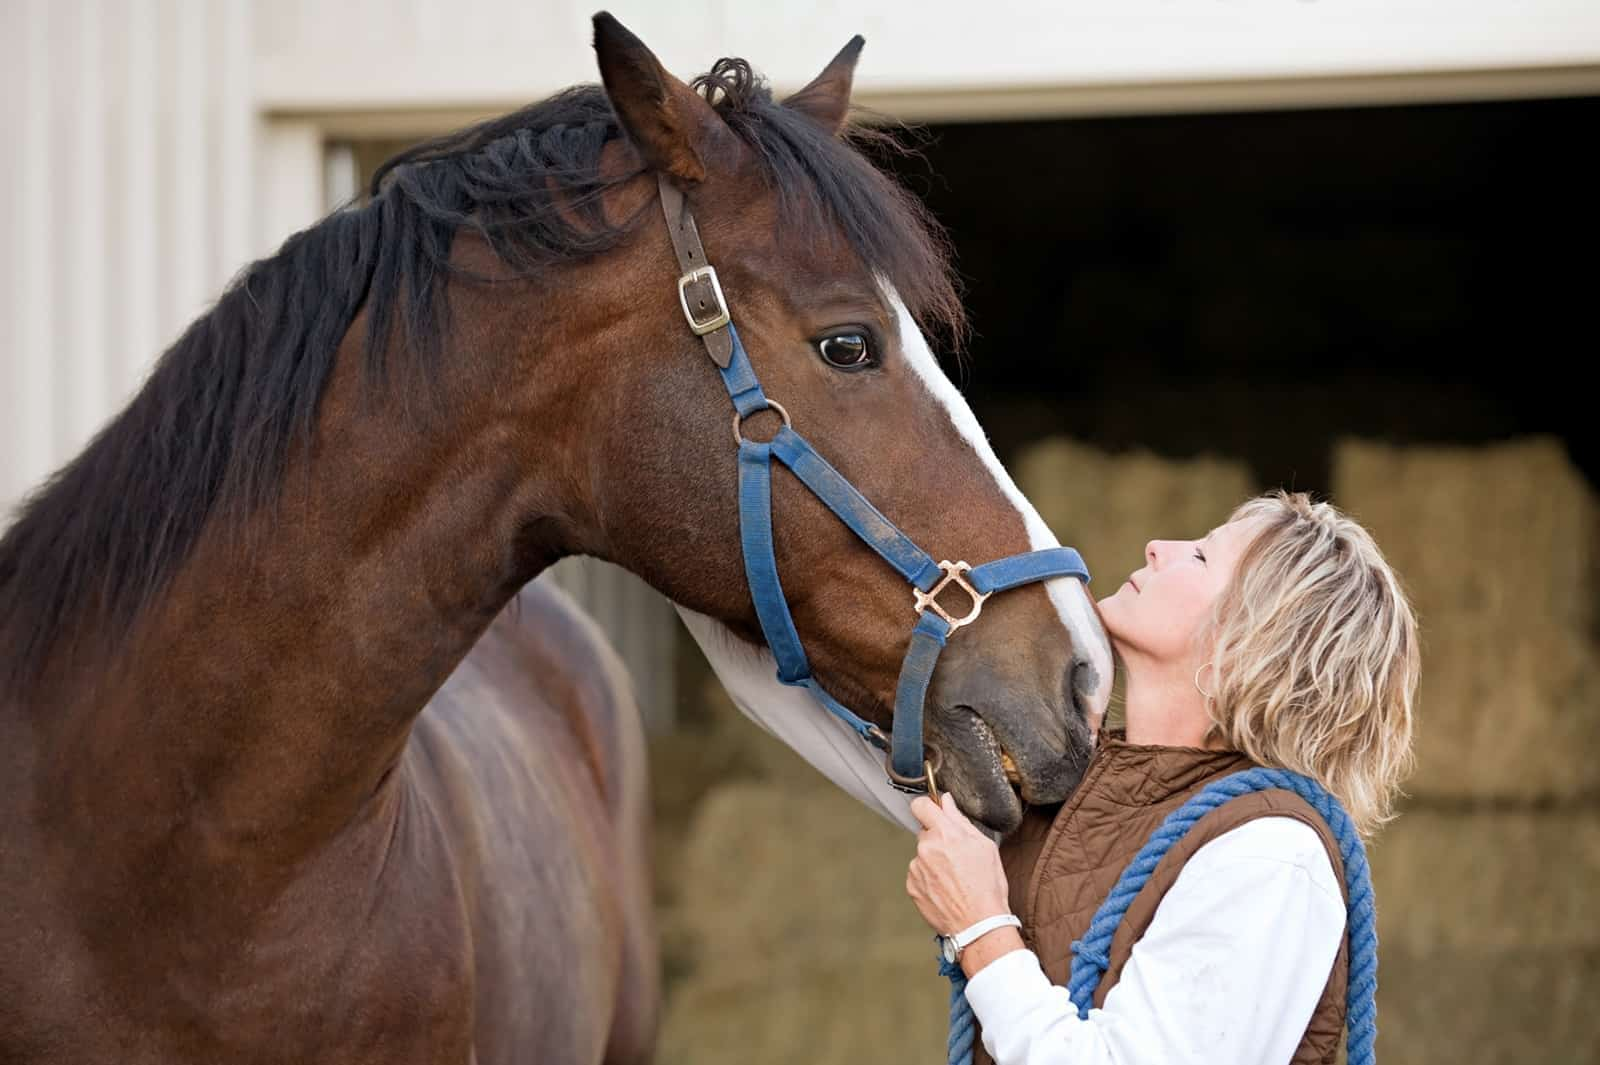 Do Horses Recognize Humans? – The Horse